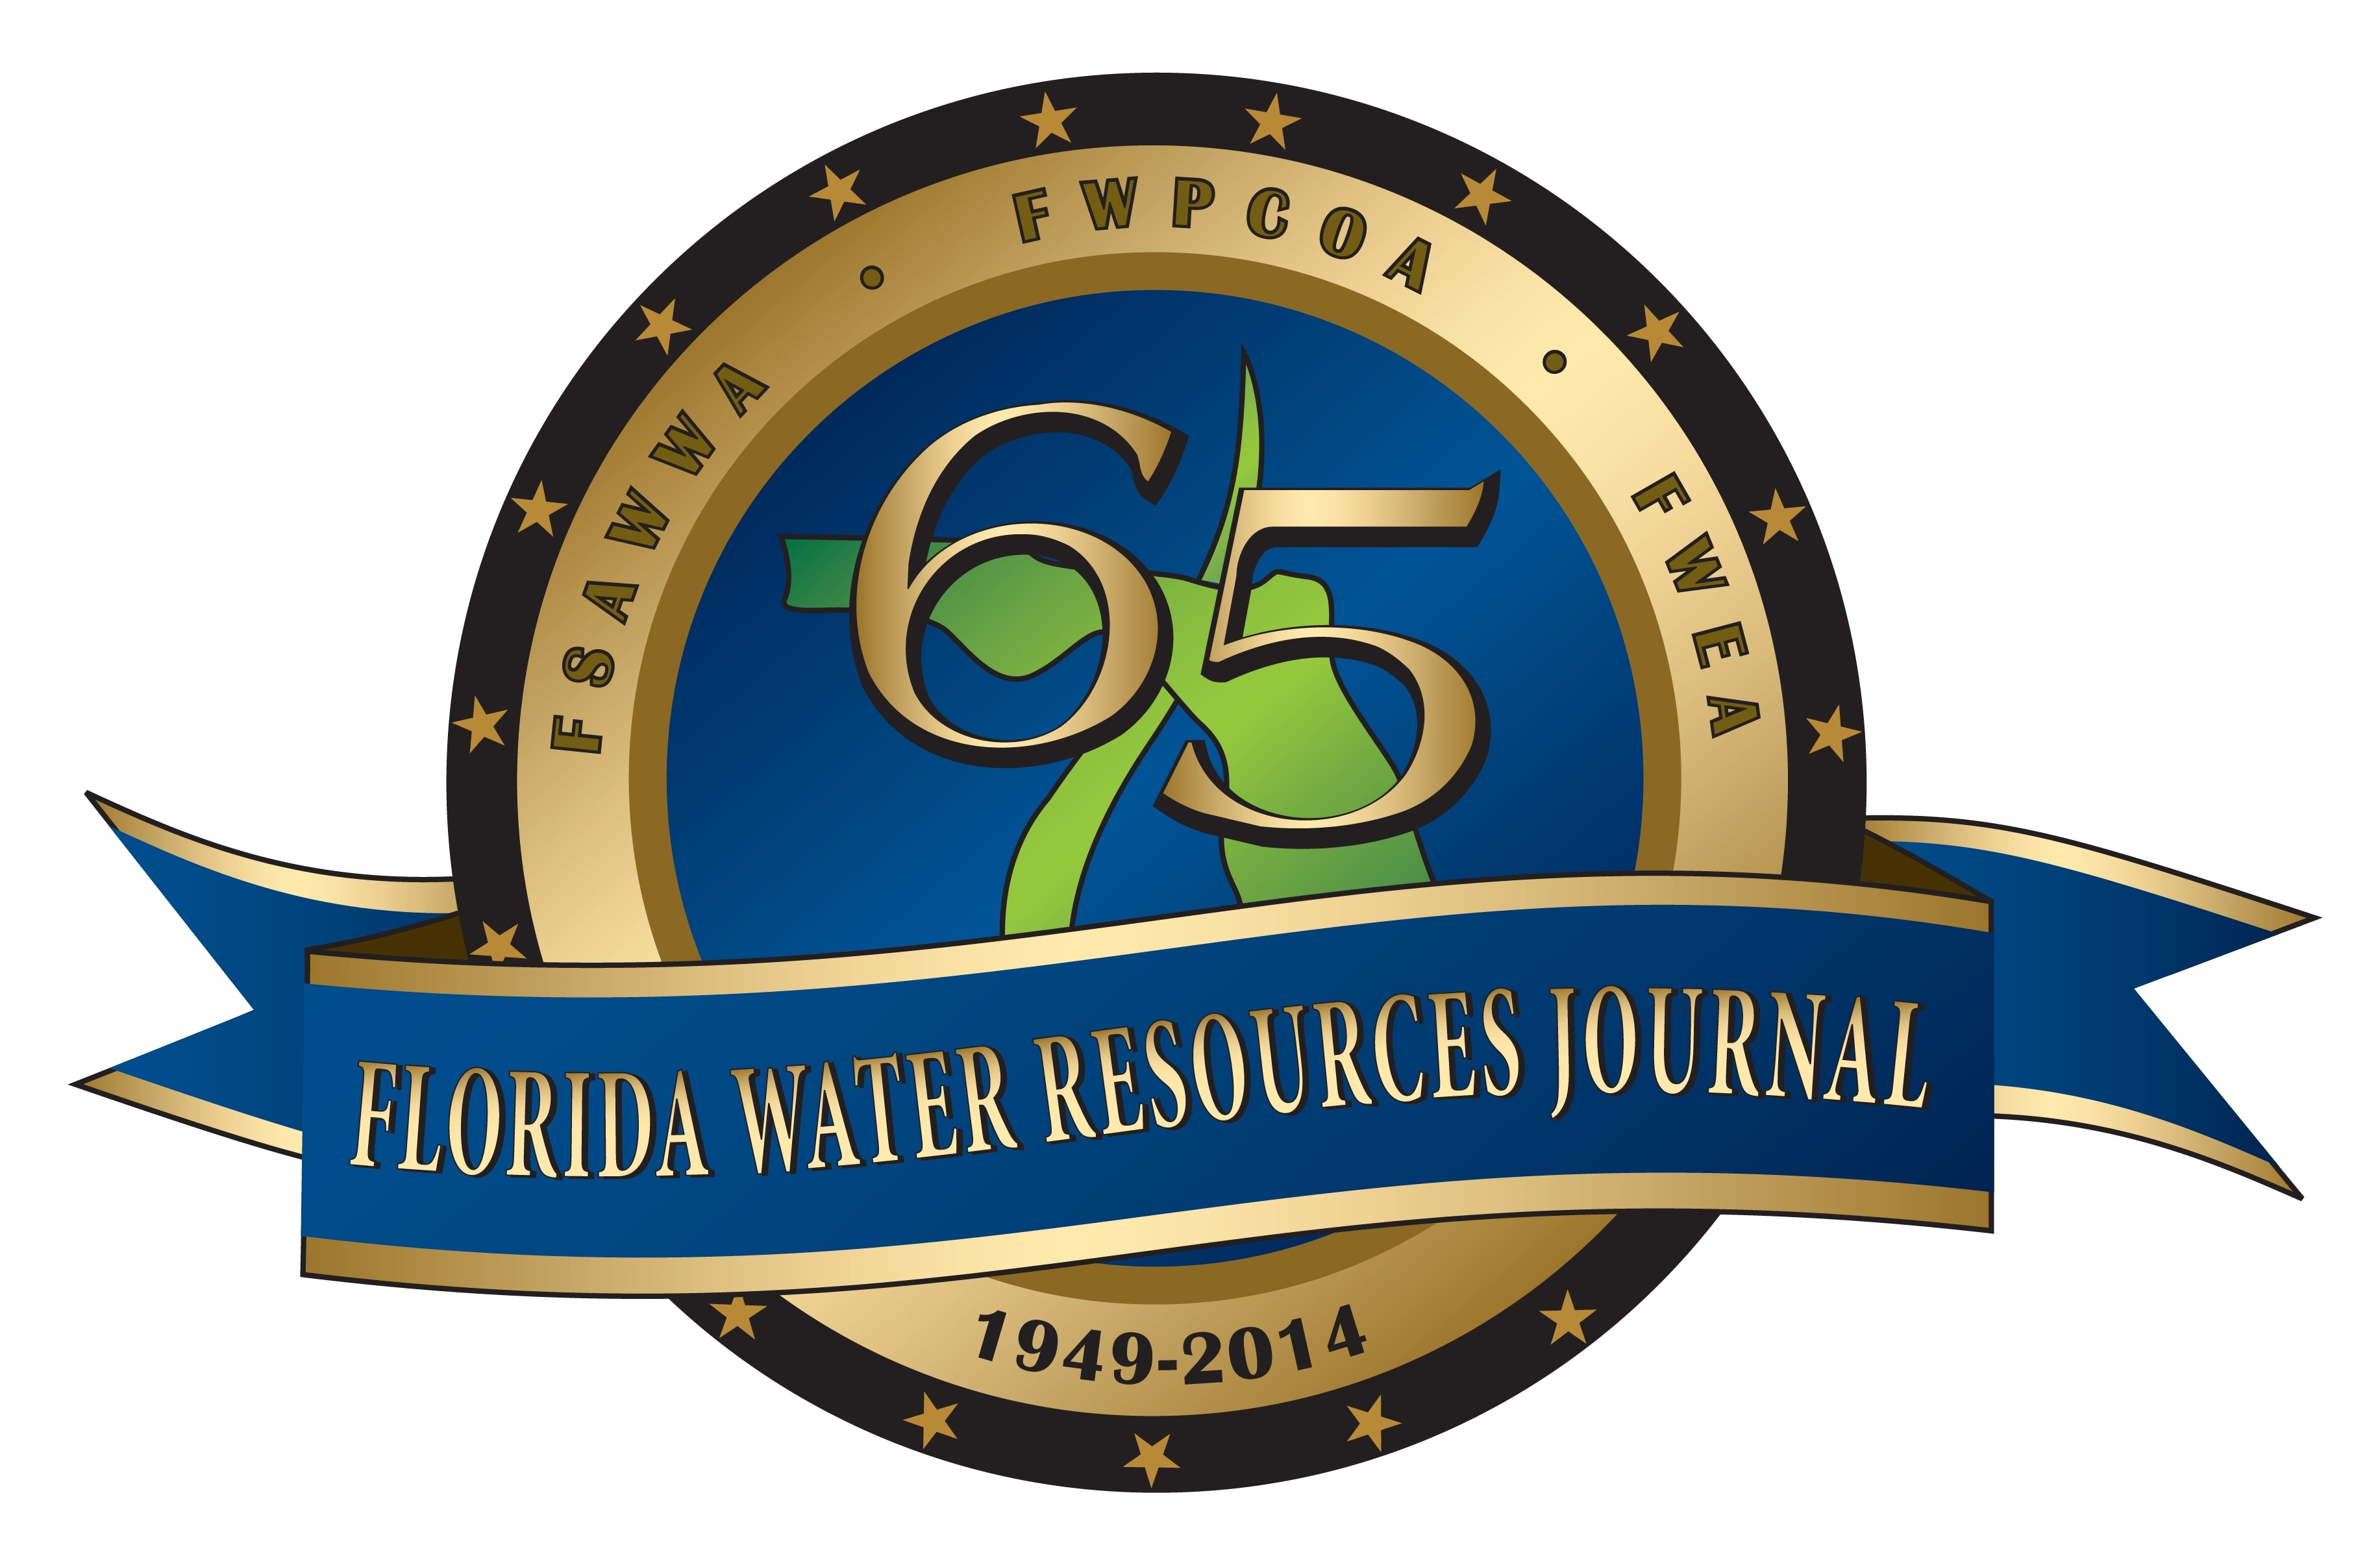 Florida Section Of The American Water Works Association